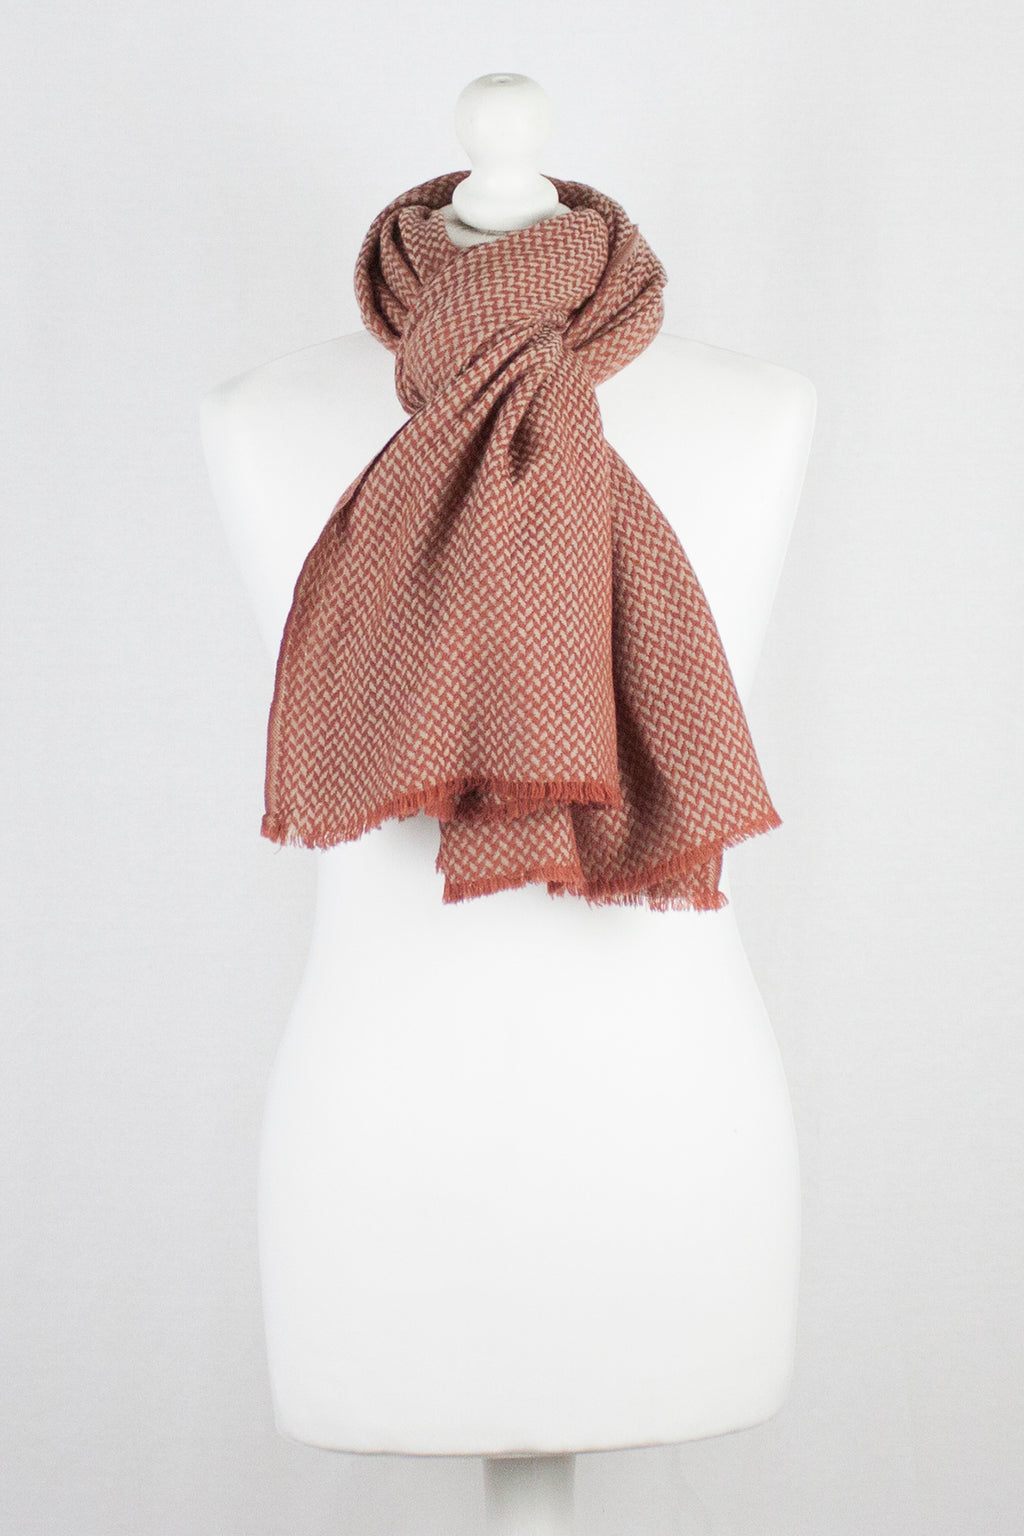 Chevron Weave Two Tone Merino Wool Scarf - Orange Beige